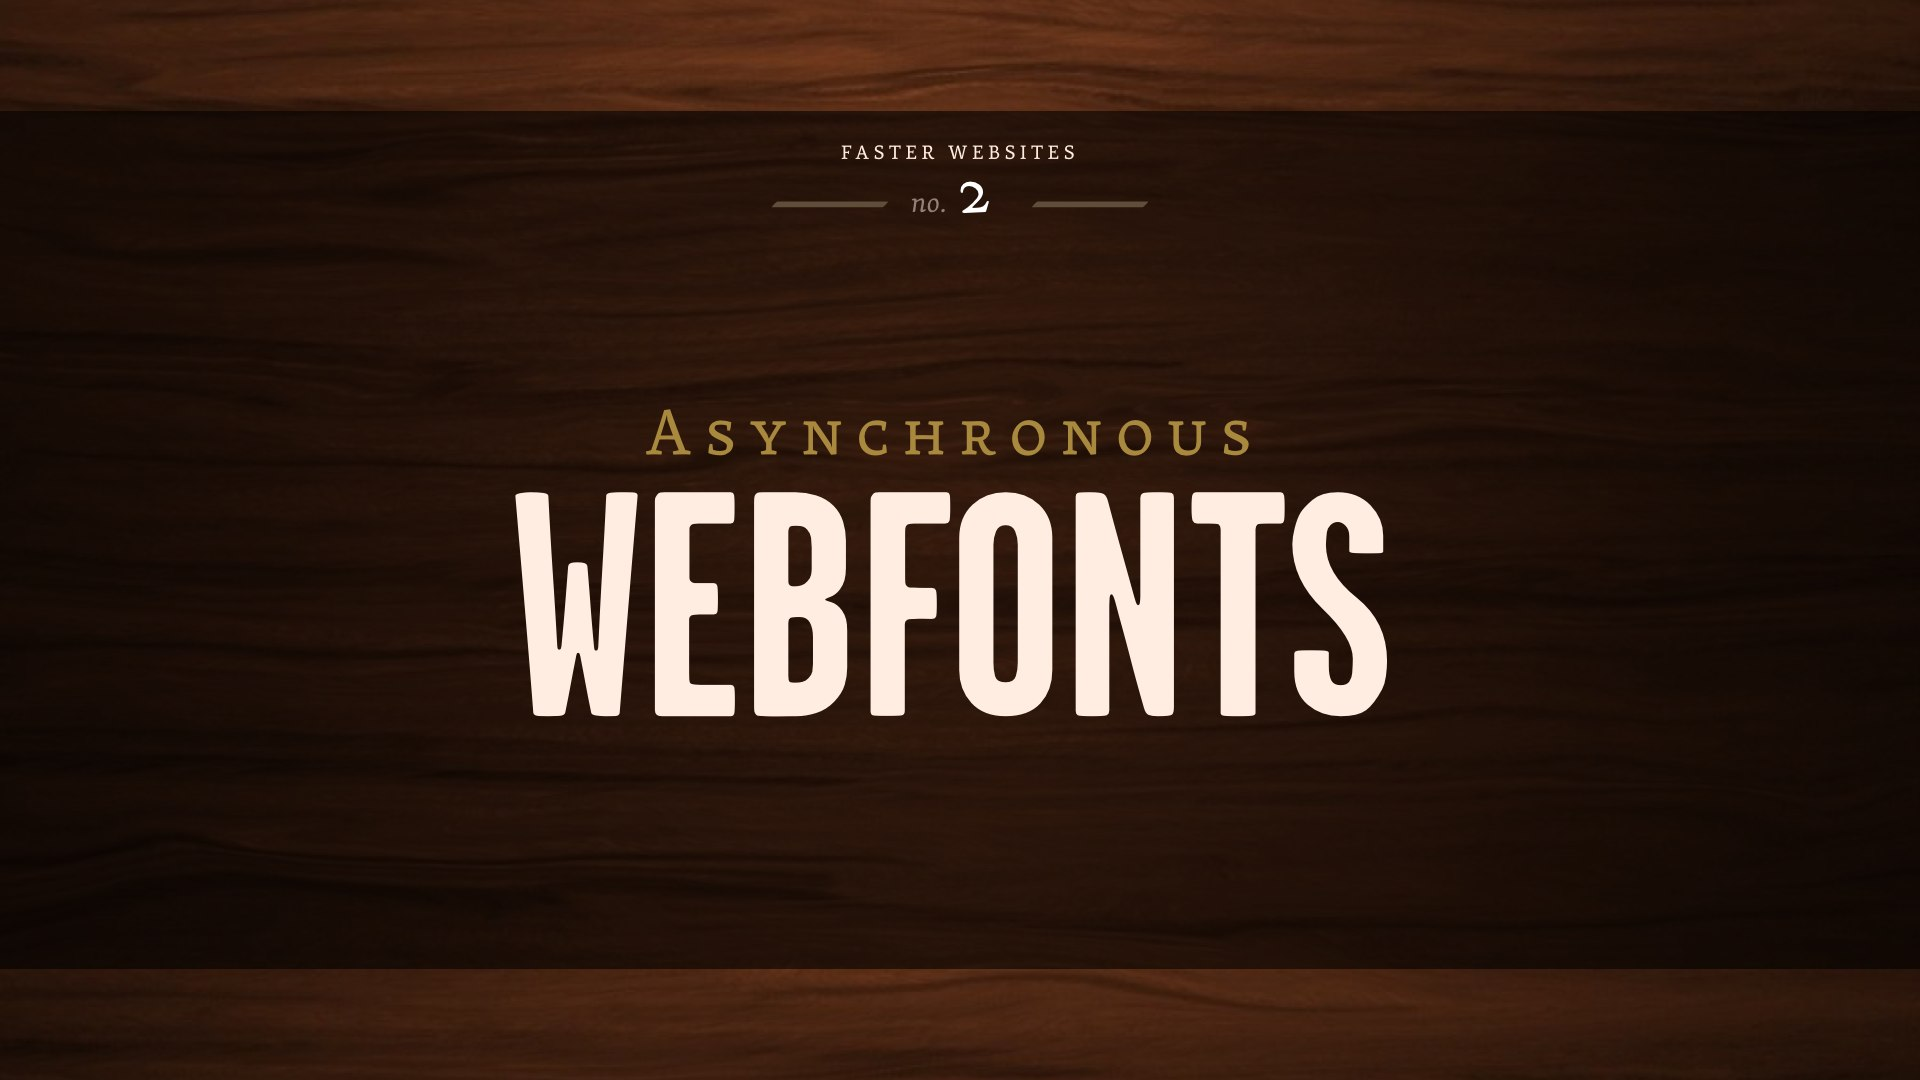 Faster Websites: Asynchronous Webfonts